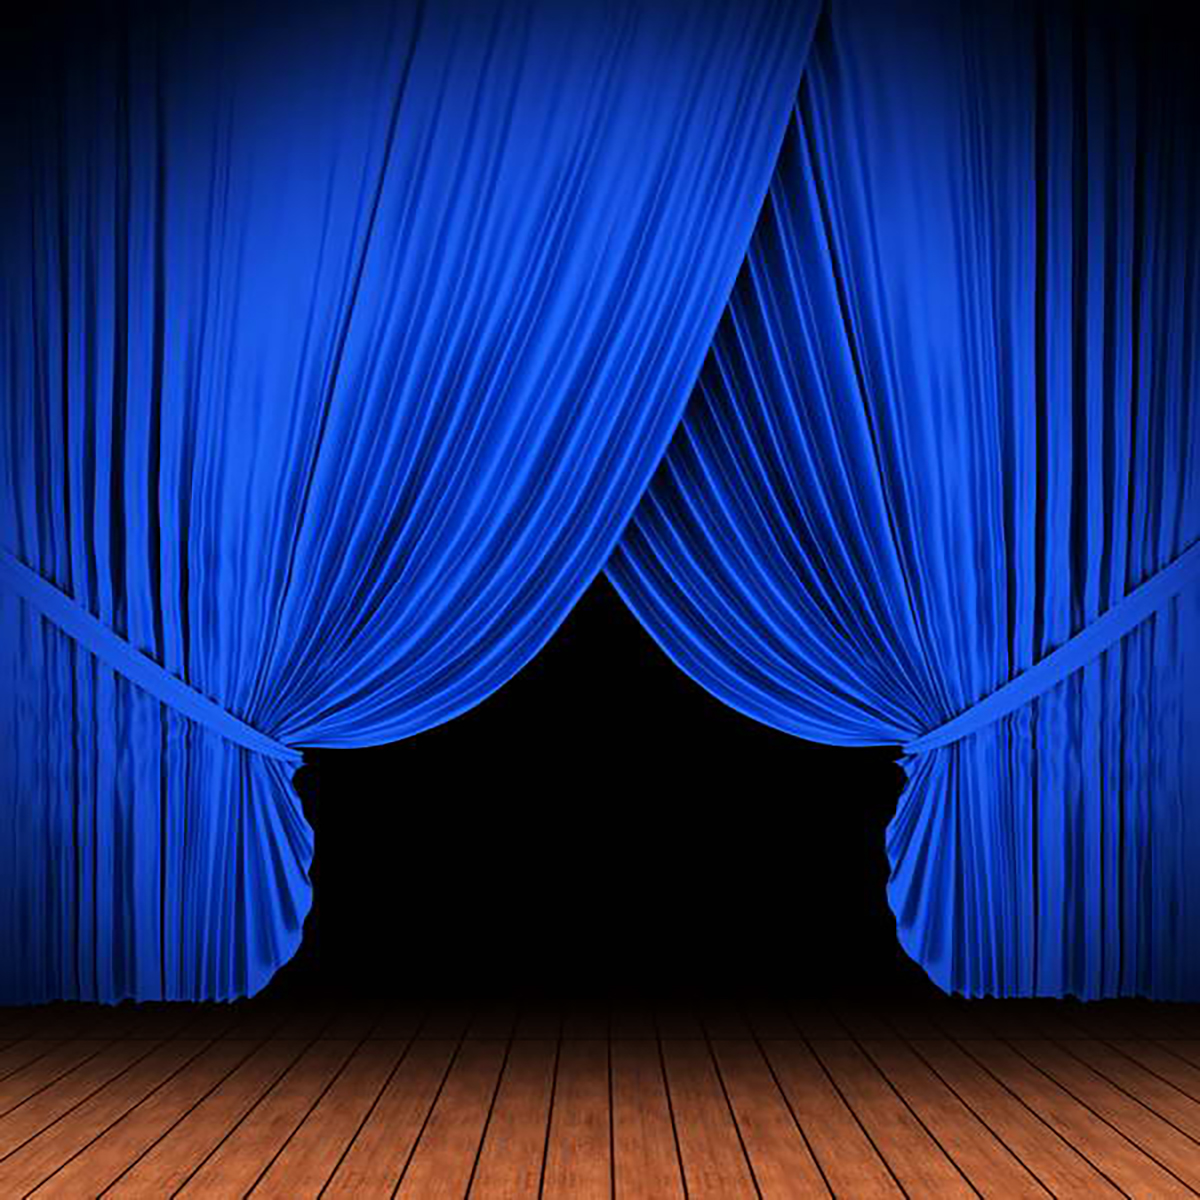 Bl blue stage curtains background - Blue Stage Curtains Background Stage Curtains Background Aliexpress Com Buy Allenjoy Photographic Background Blue Download